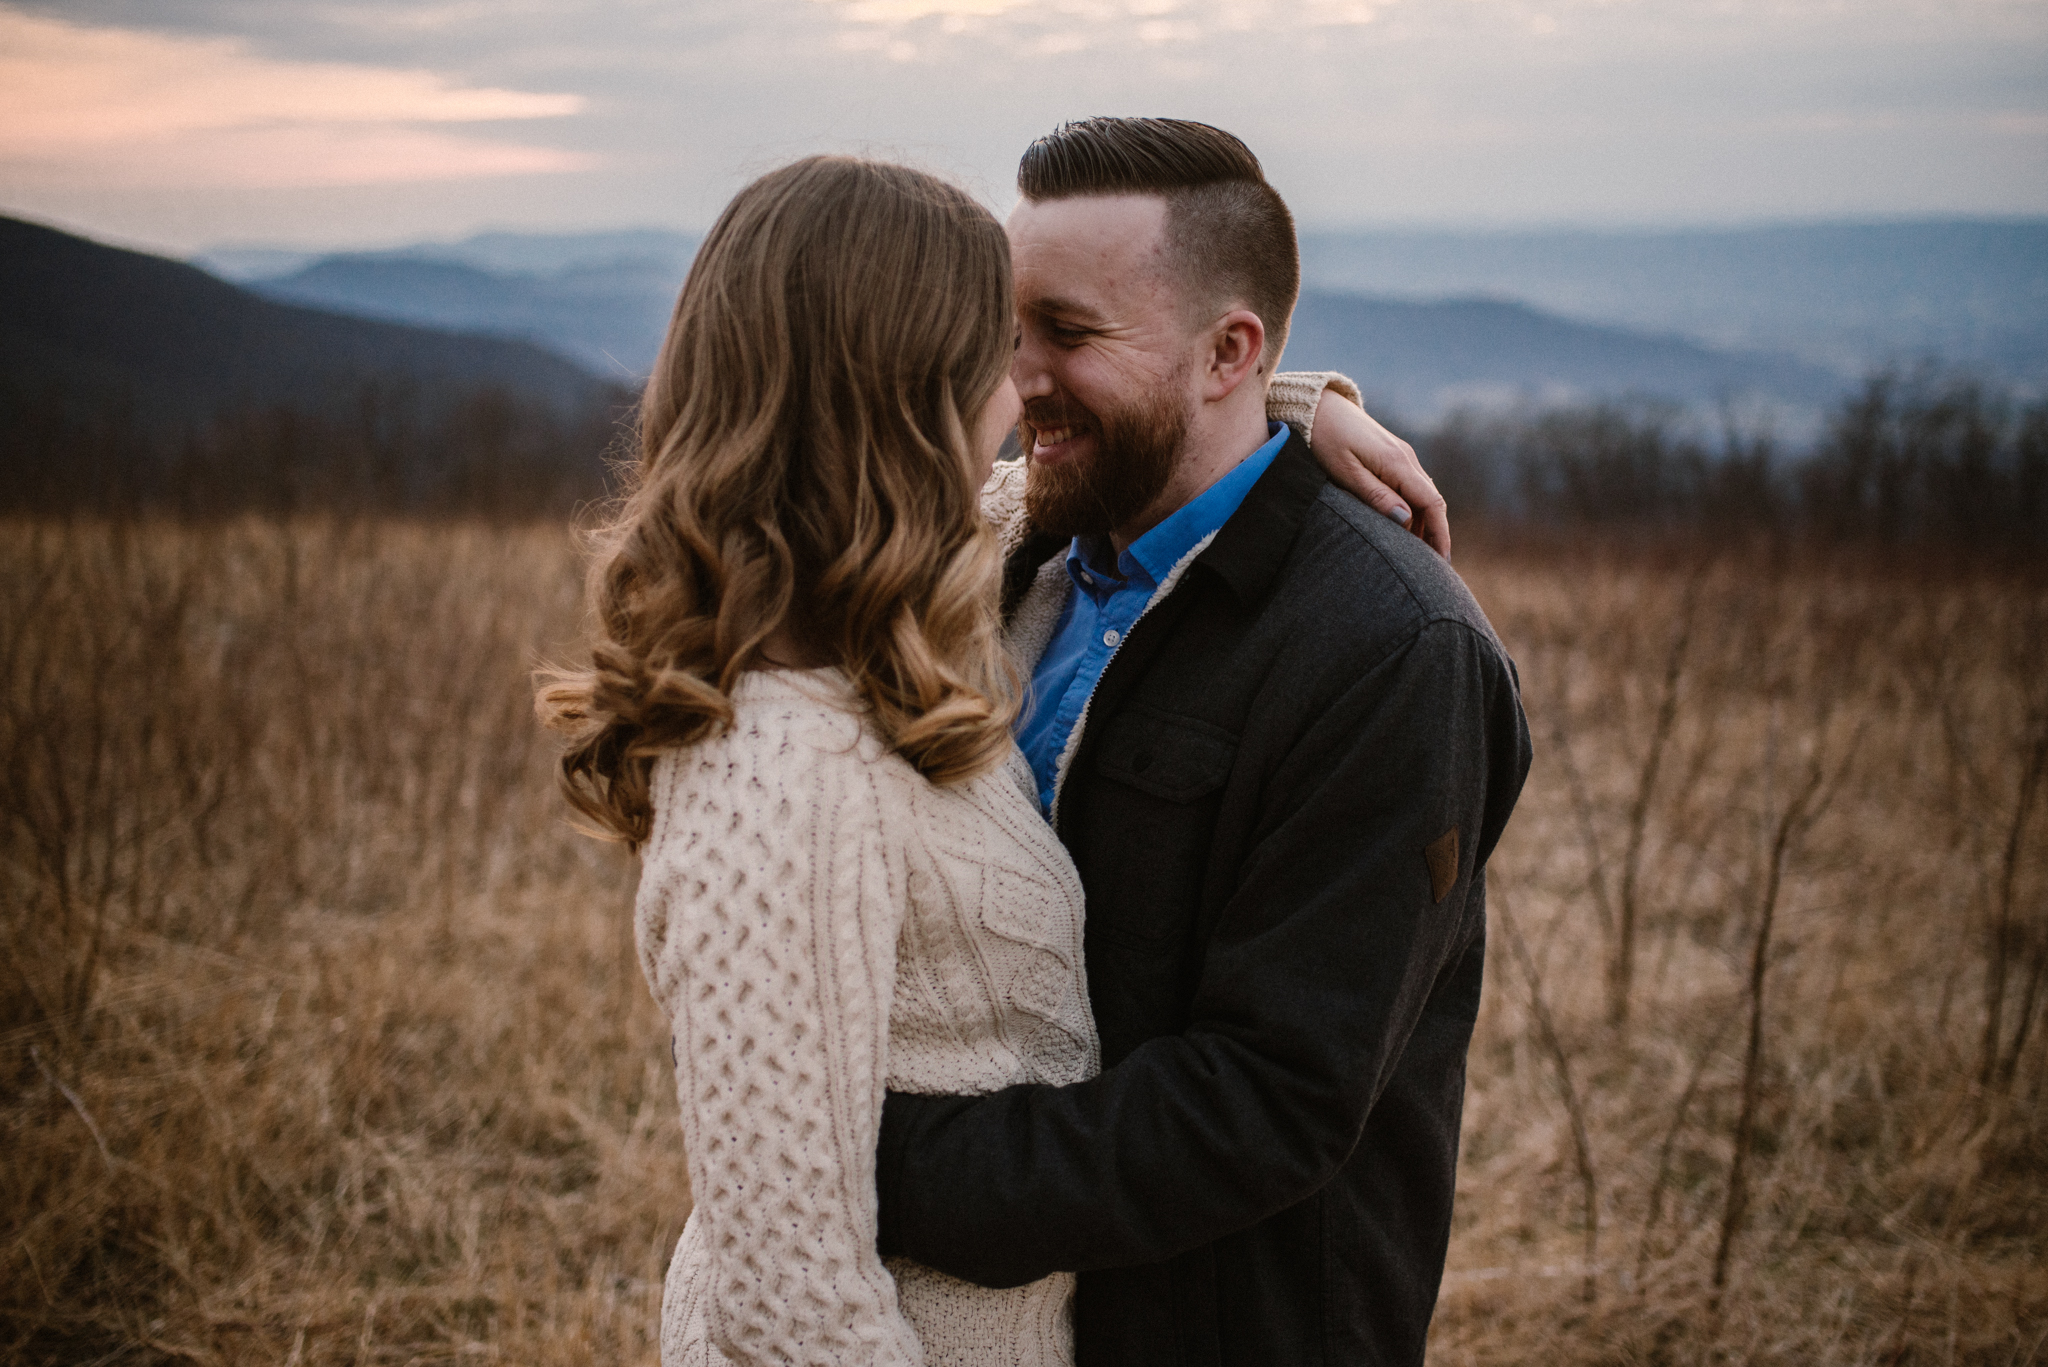 Nicole and Victor - Shenandoah National Park Engagement Photography - Blue Ridge Mountains Adventure Photography - White Sails Creative Photography_39.jpg